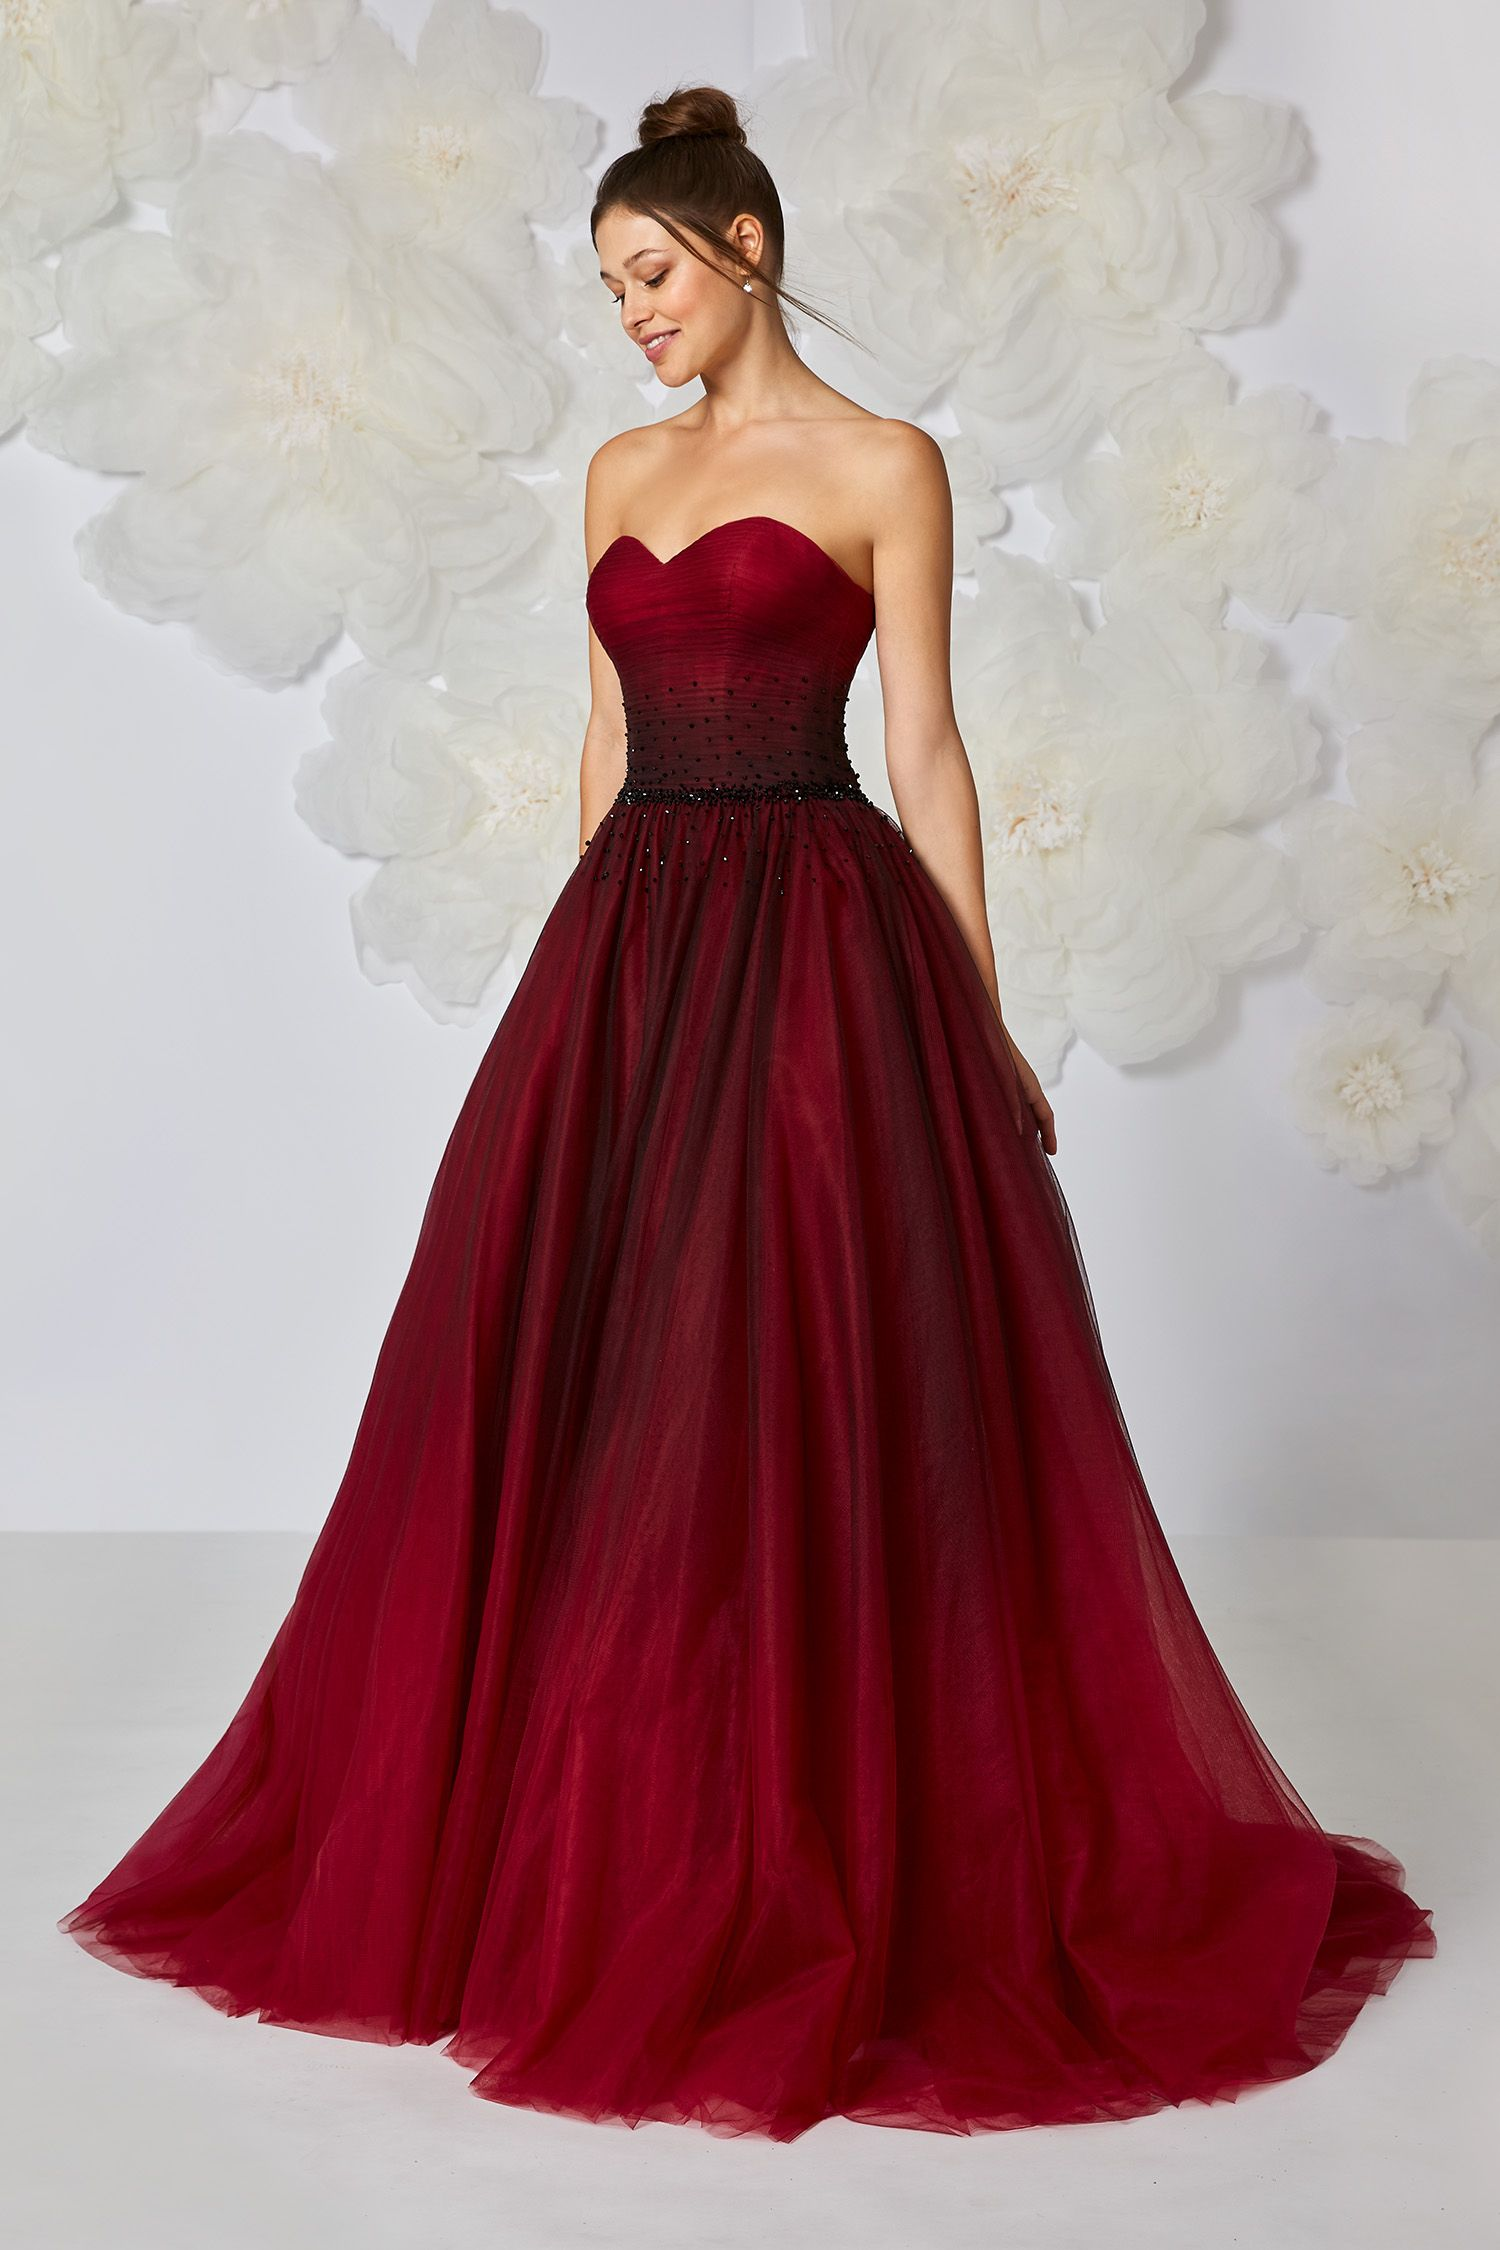 Bridal outfit in red for that special day 5